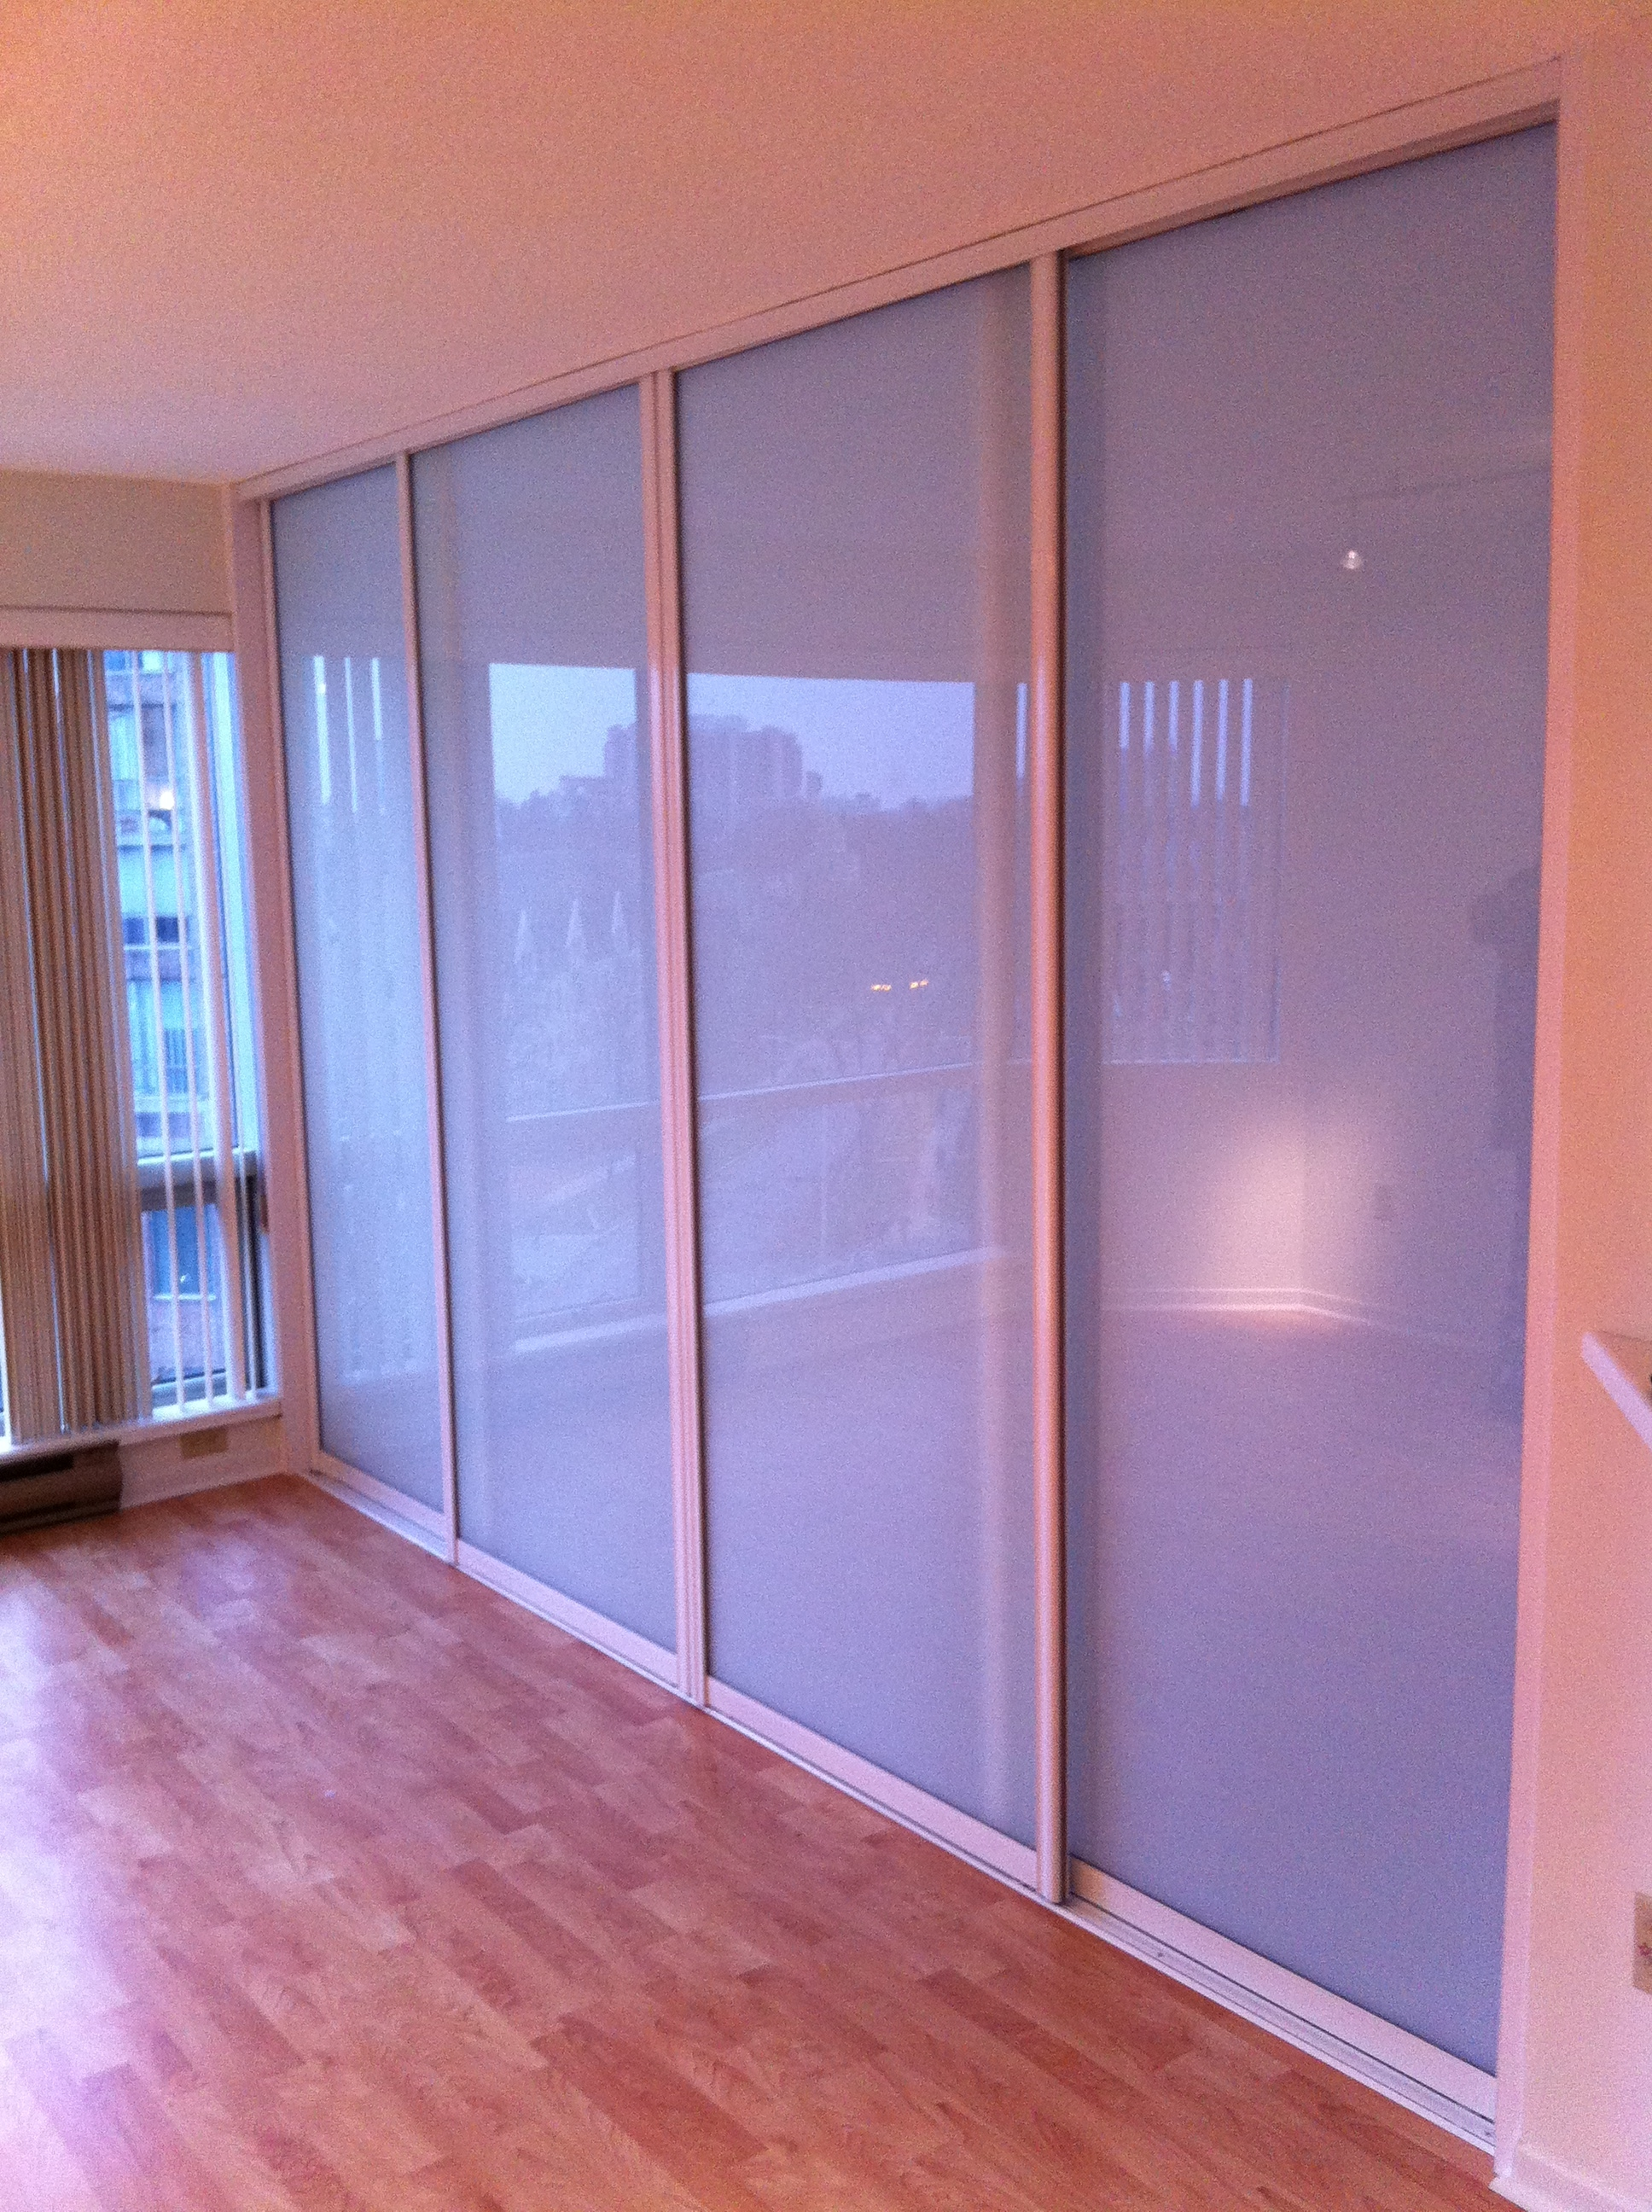 8 Foot Sliding Glass Closet Doorsgalaxy doors ltd slidin